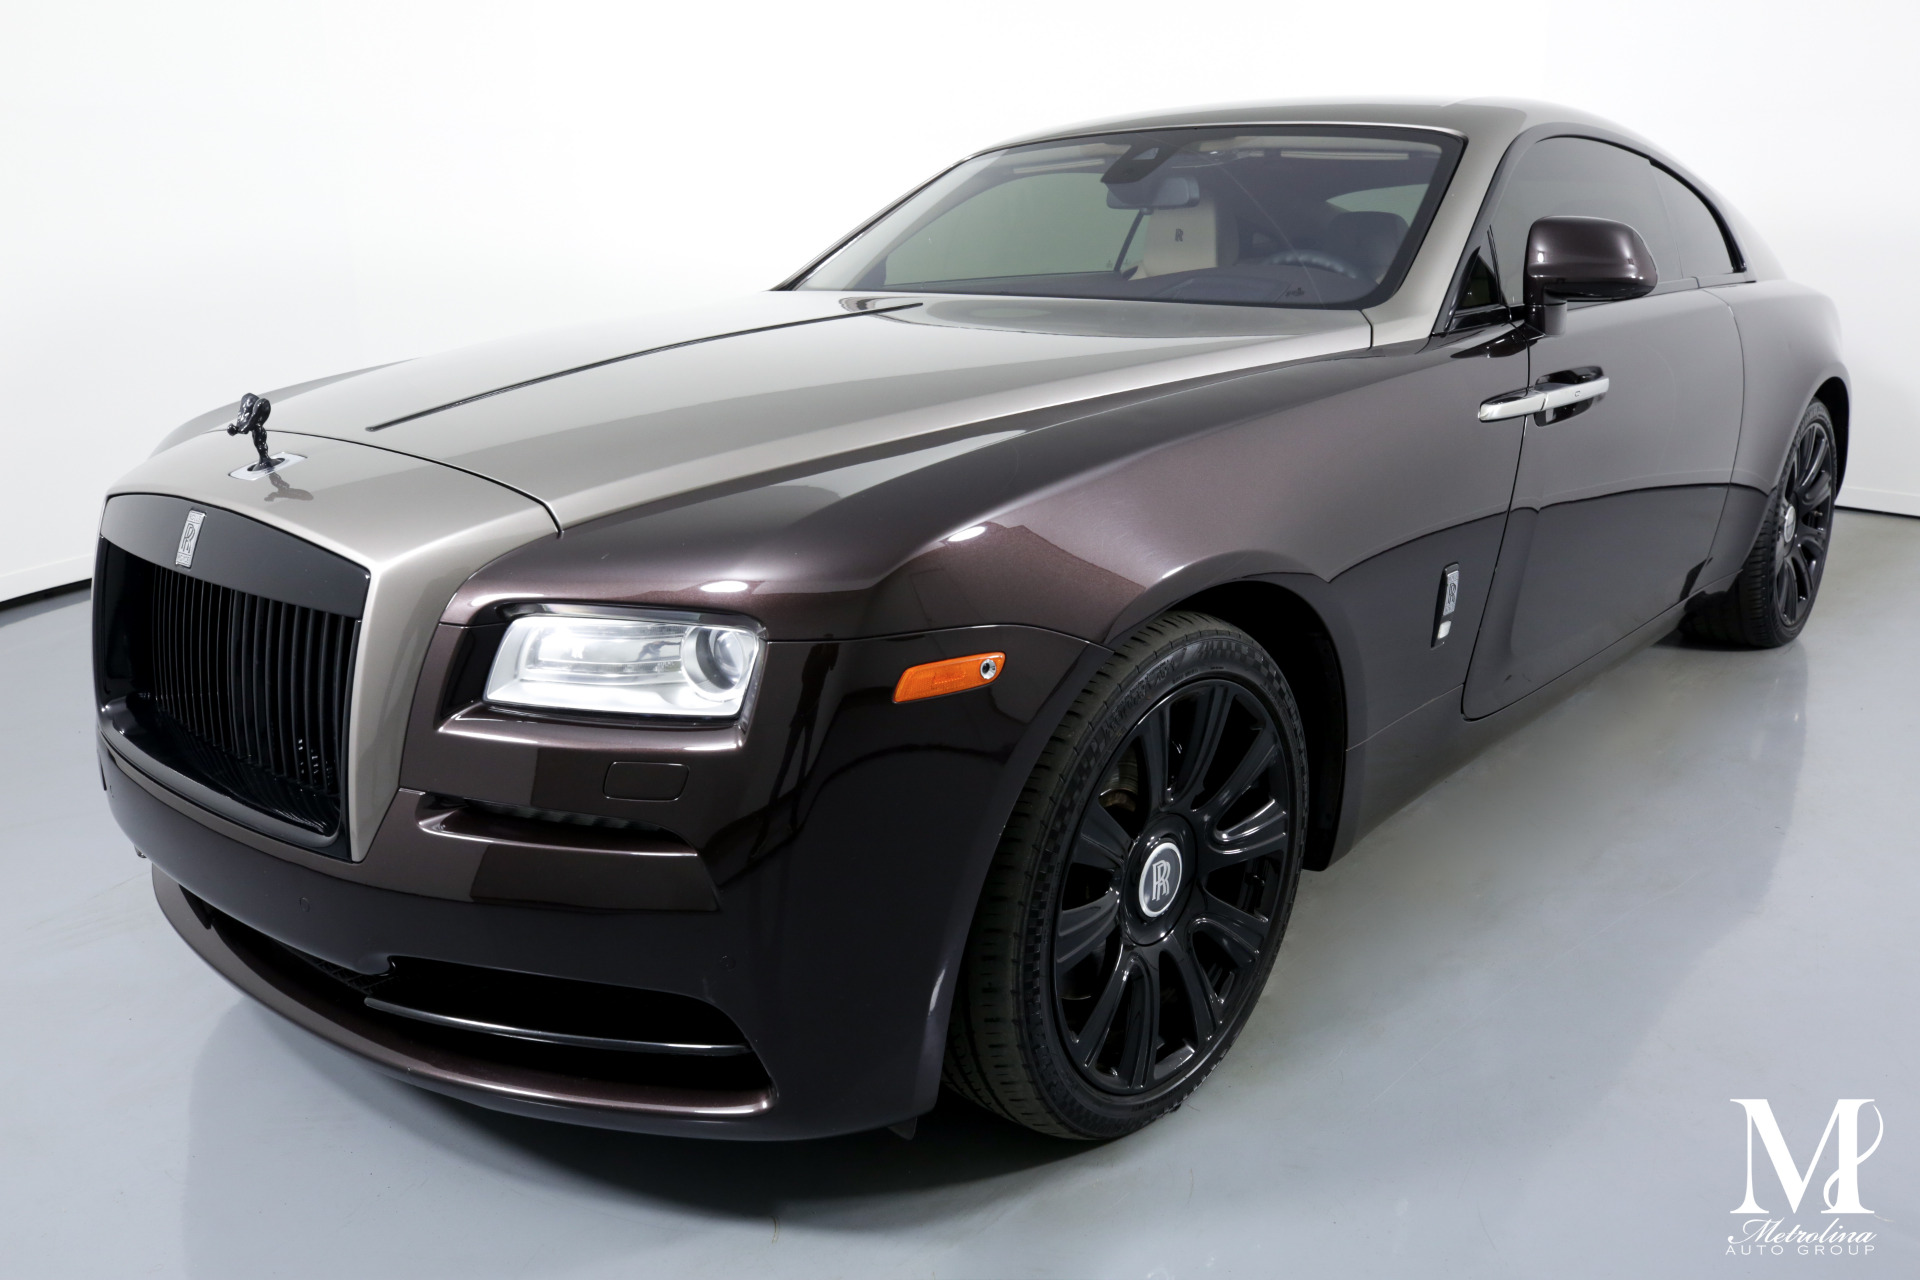 Used 2014 Rolls-Royce Wraith for sale $157,996 at Metrolina Auto Group in Charlotte NC 28217 - 4